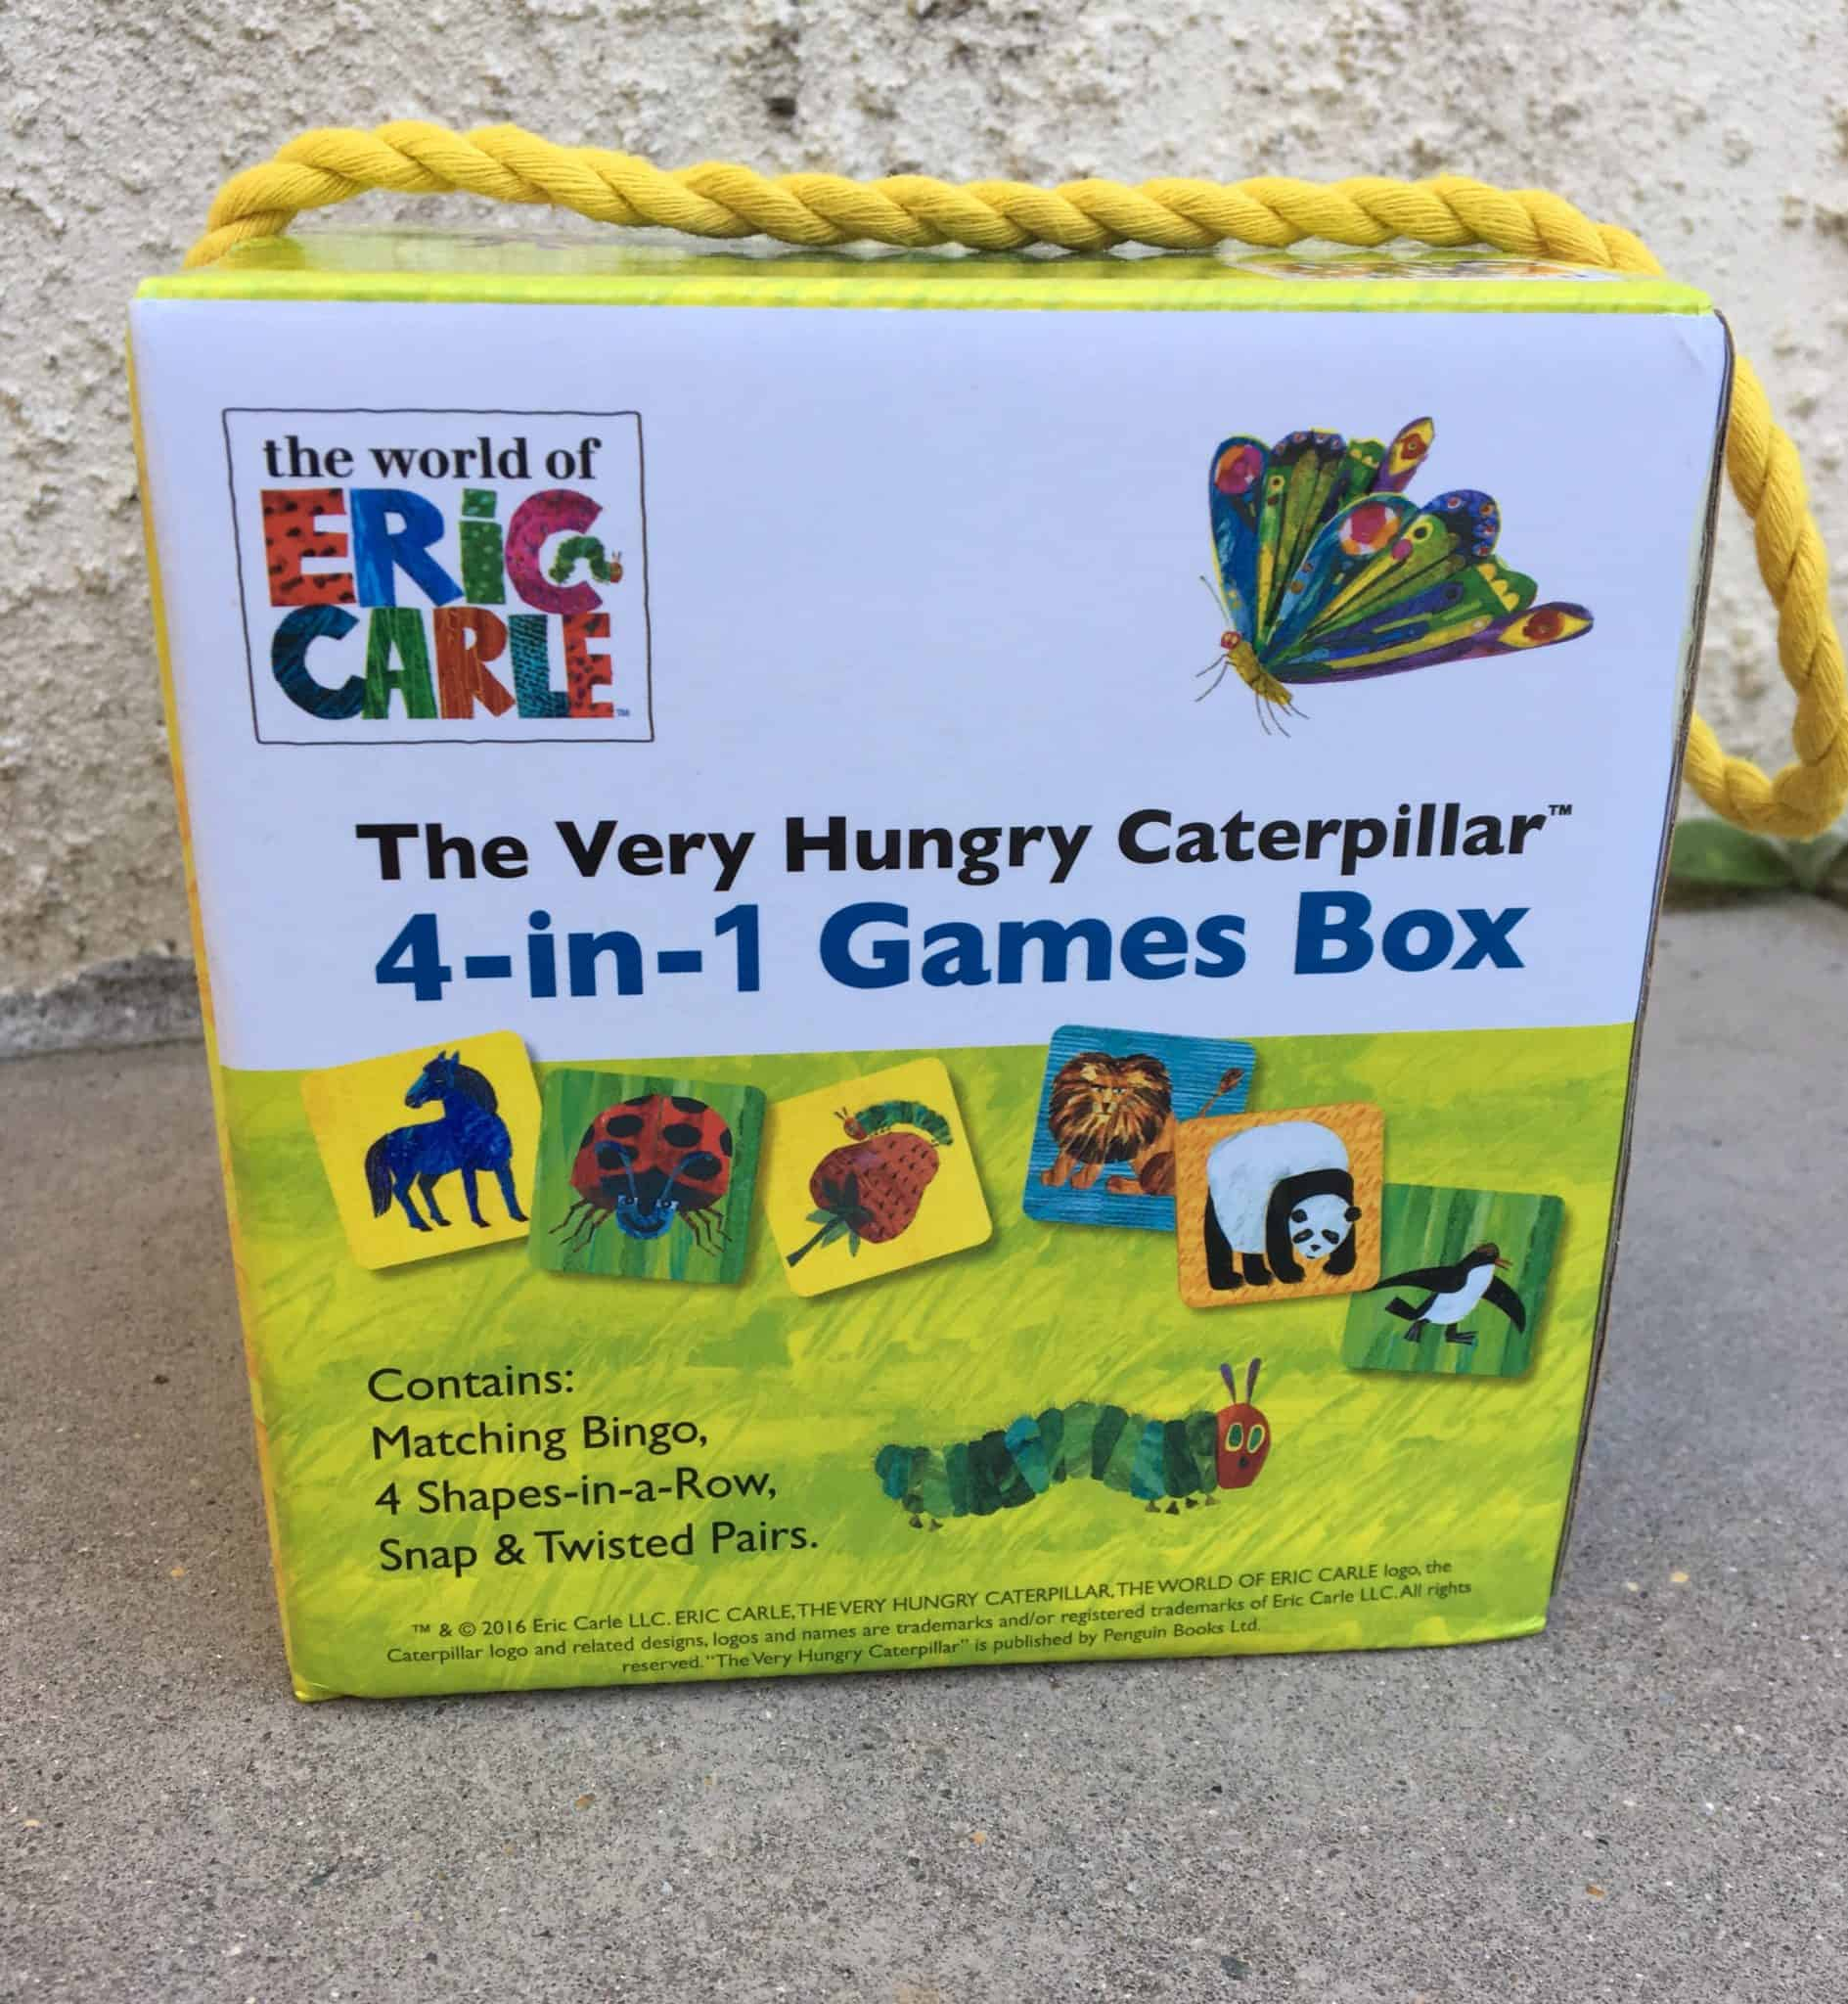 The Very Hungry Caterpillar 4-in-1 Games Box Review and Giveaway